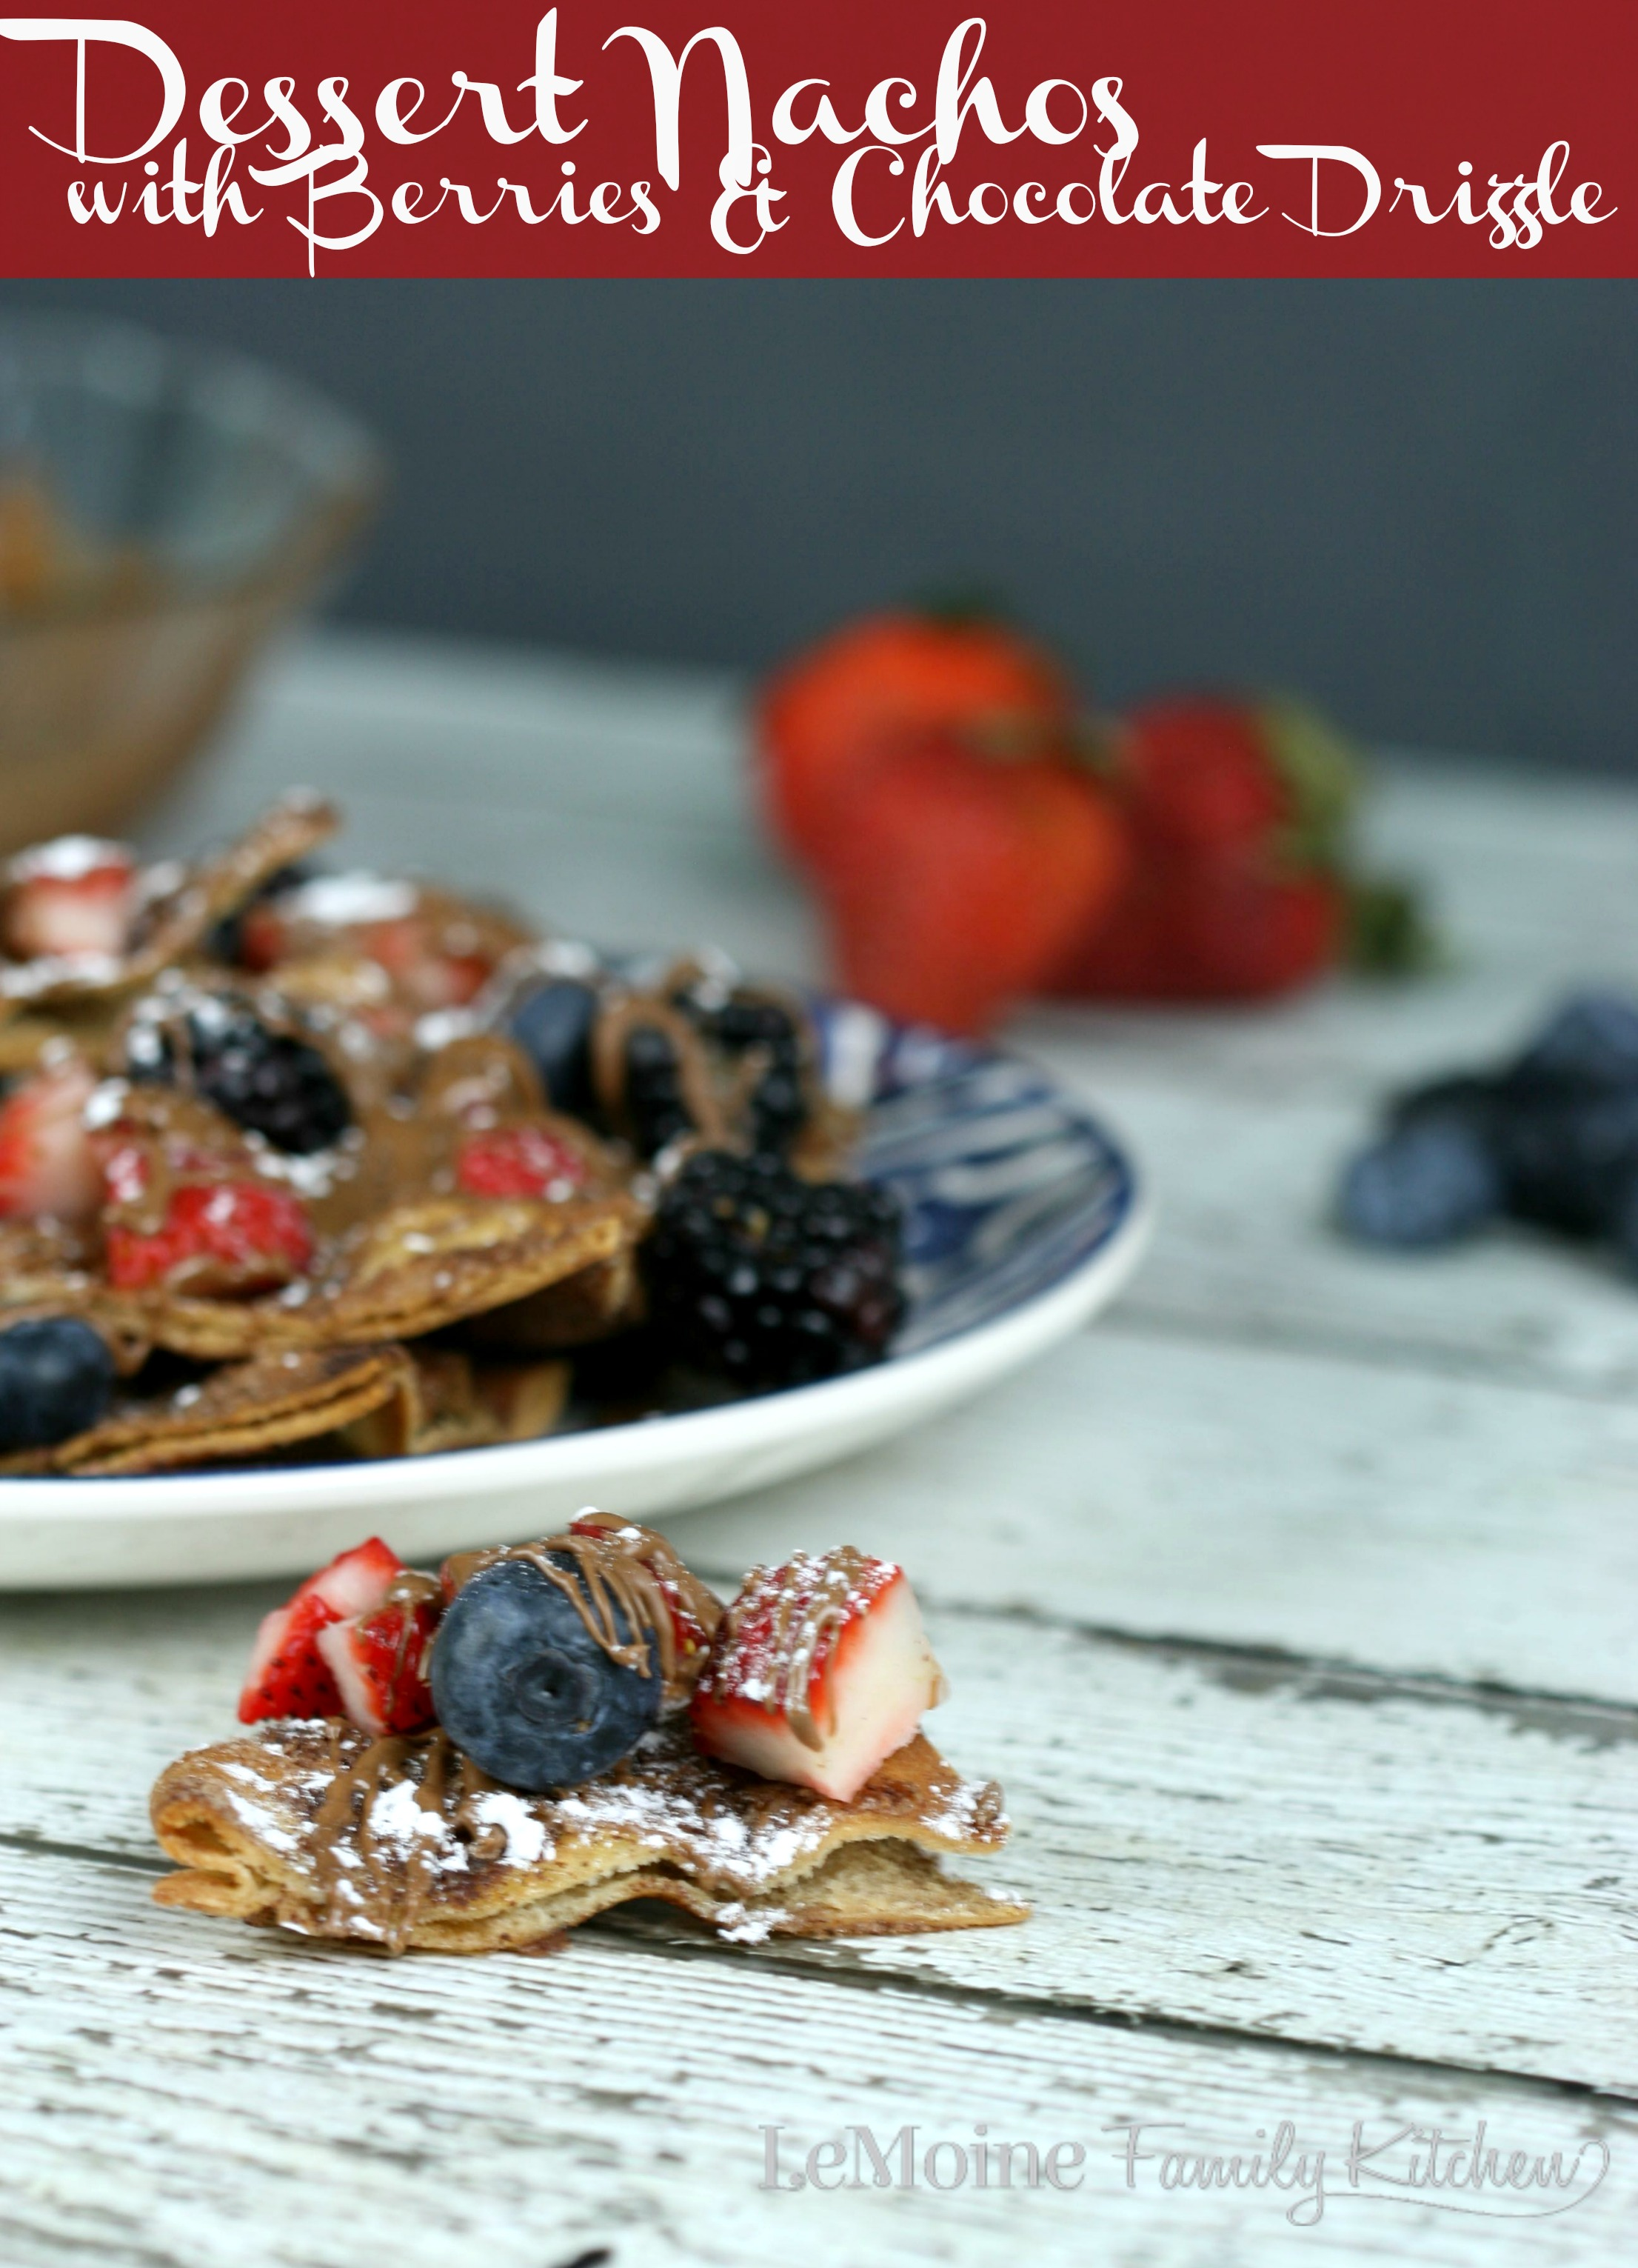 Dessert Nachos with Berries & Chocolate Drizzle